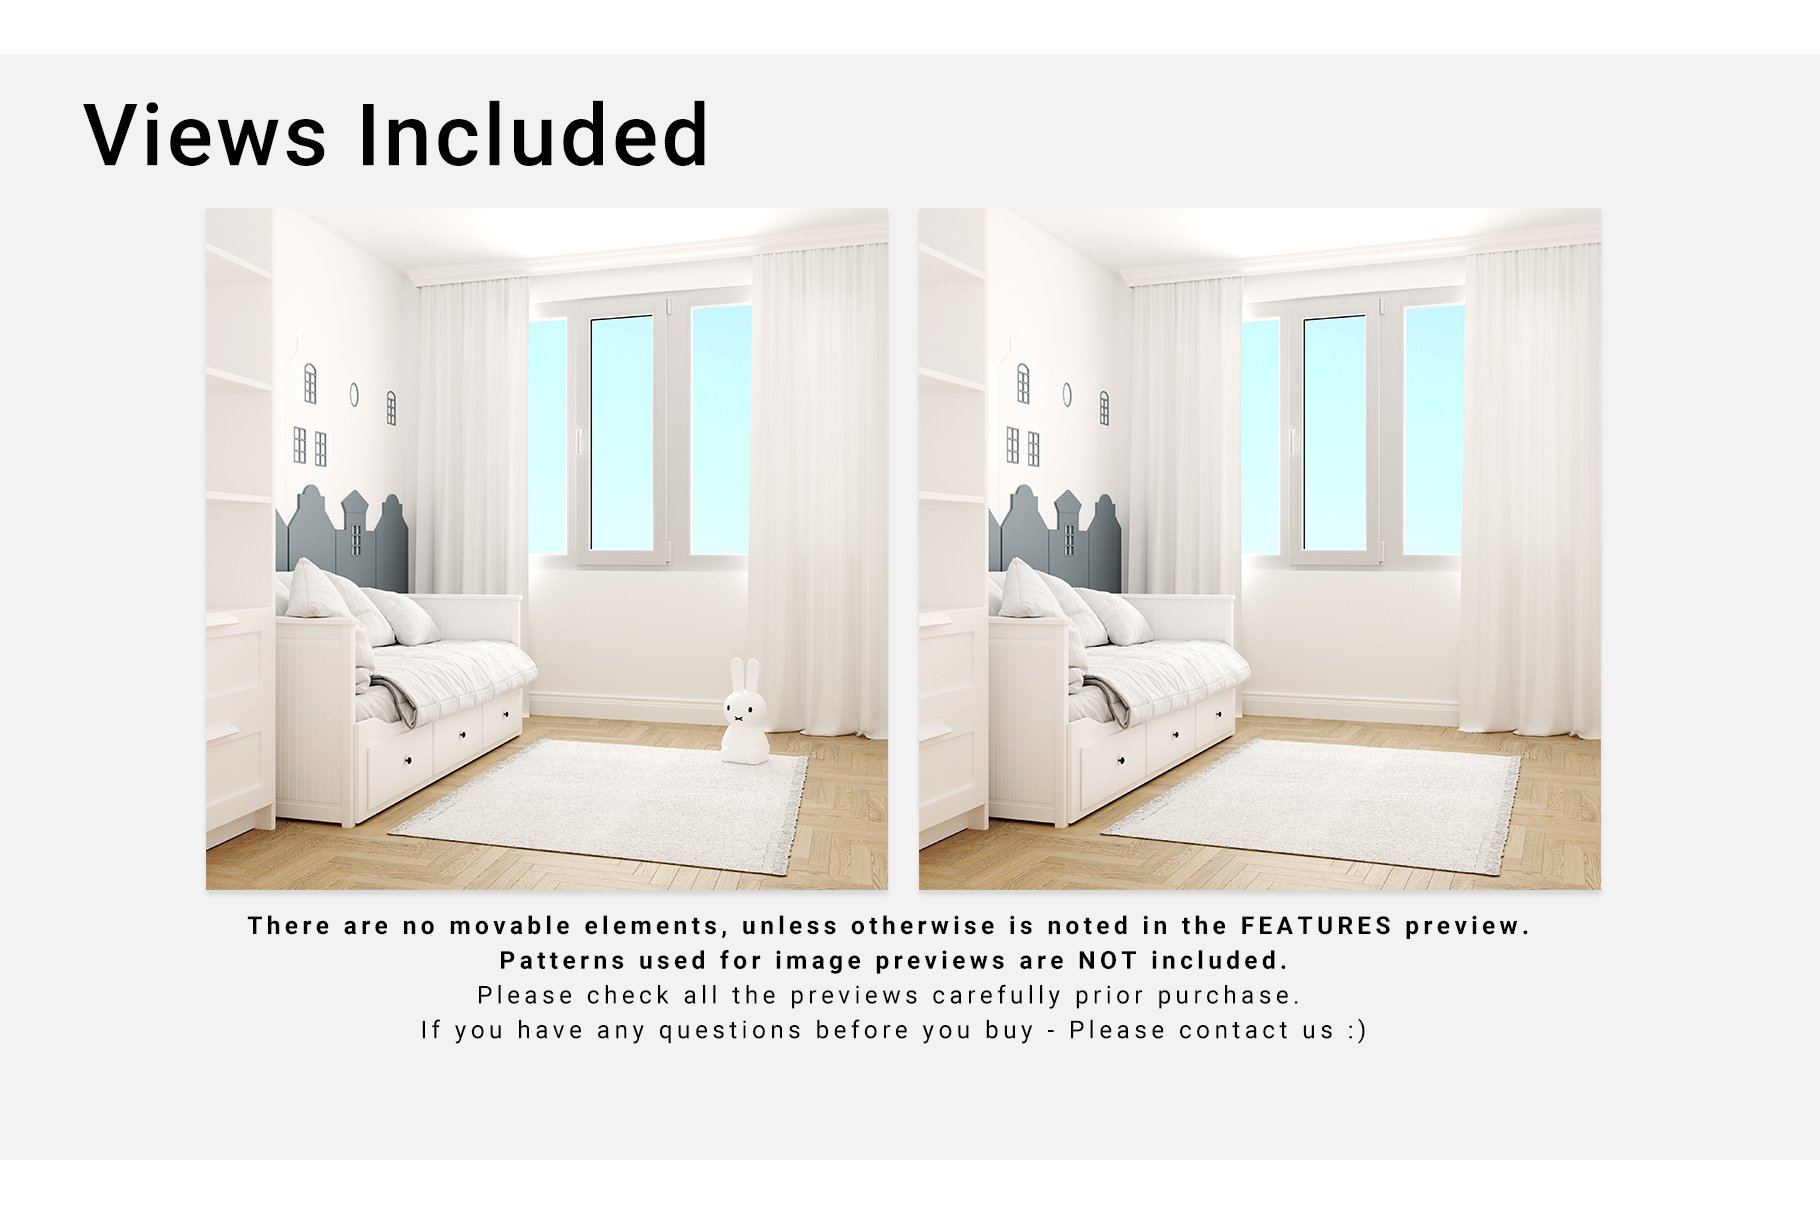 Toddlers Room Textile - Bedding, Curtains & Carpet Set example image 4